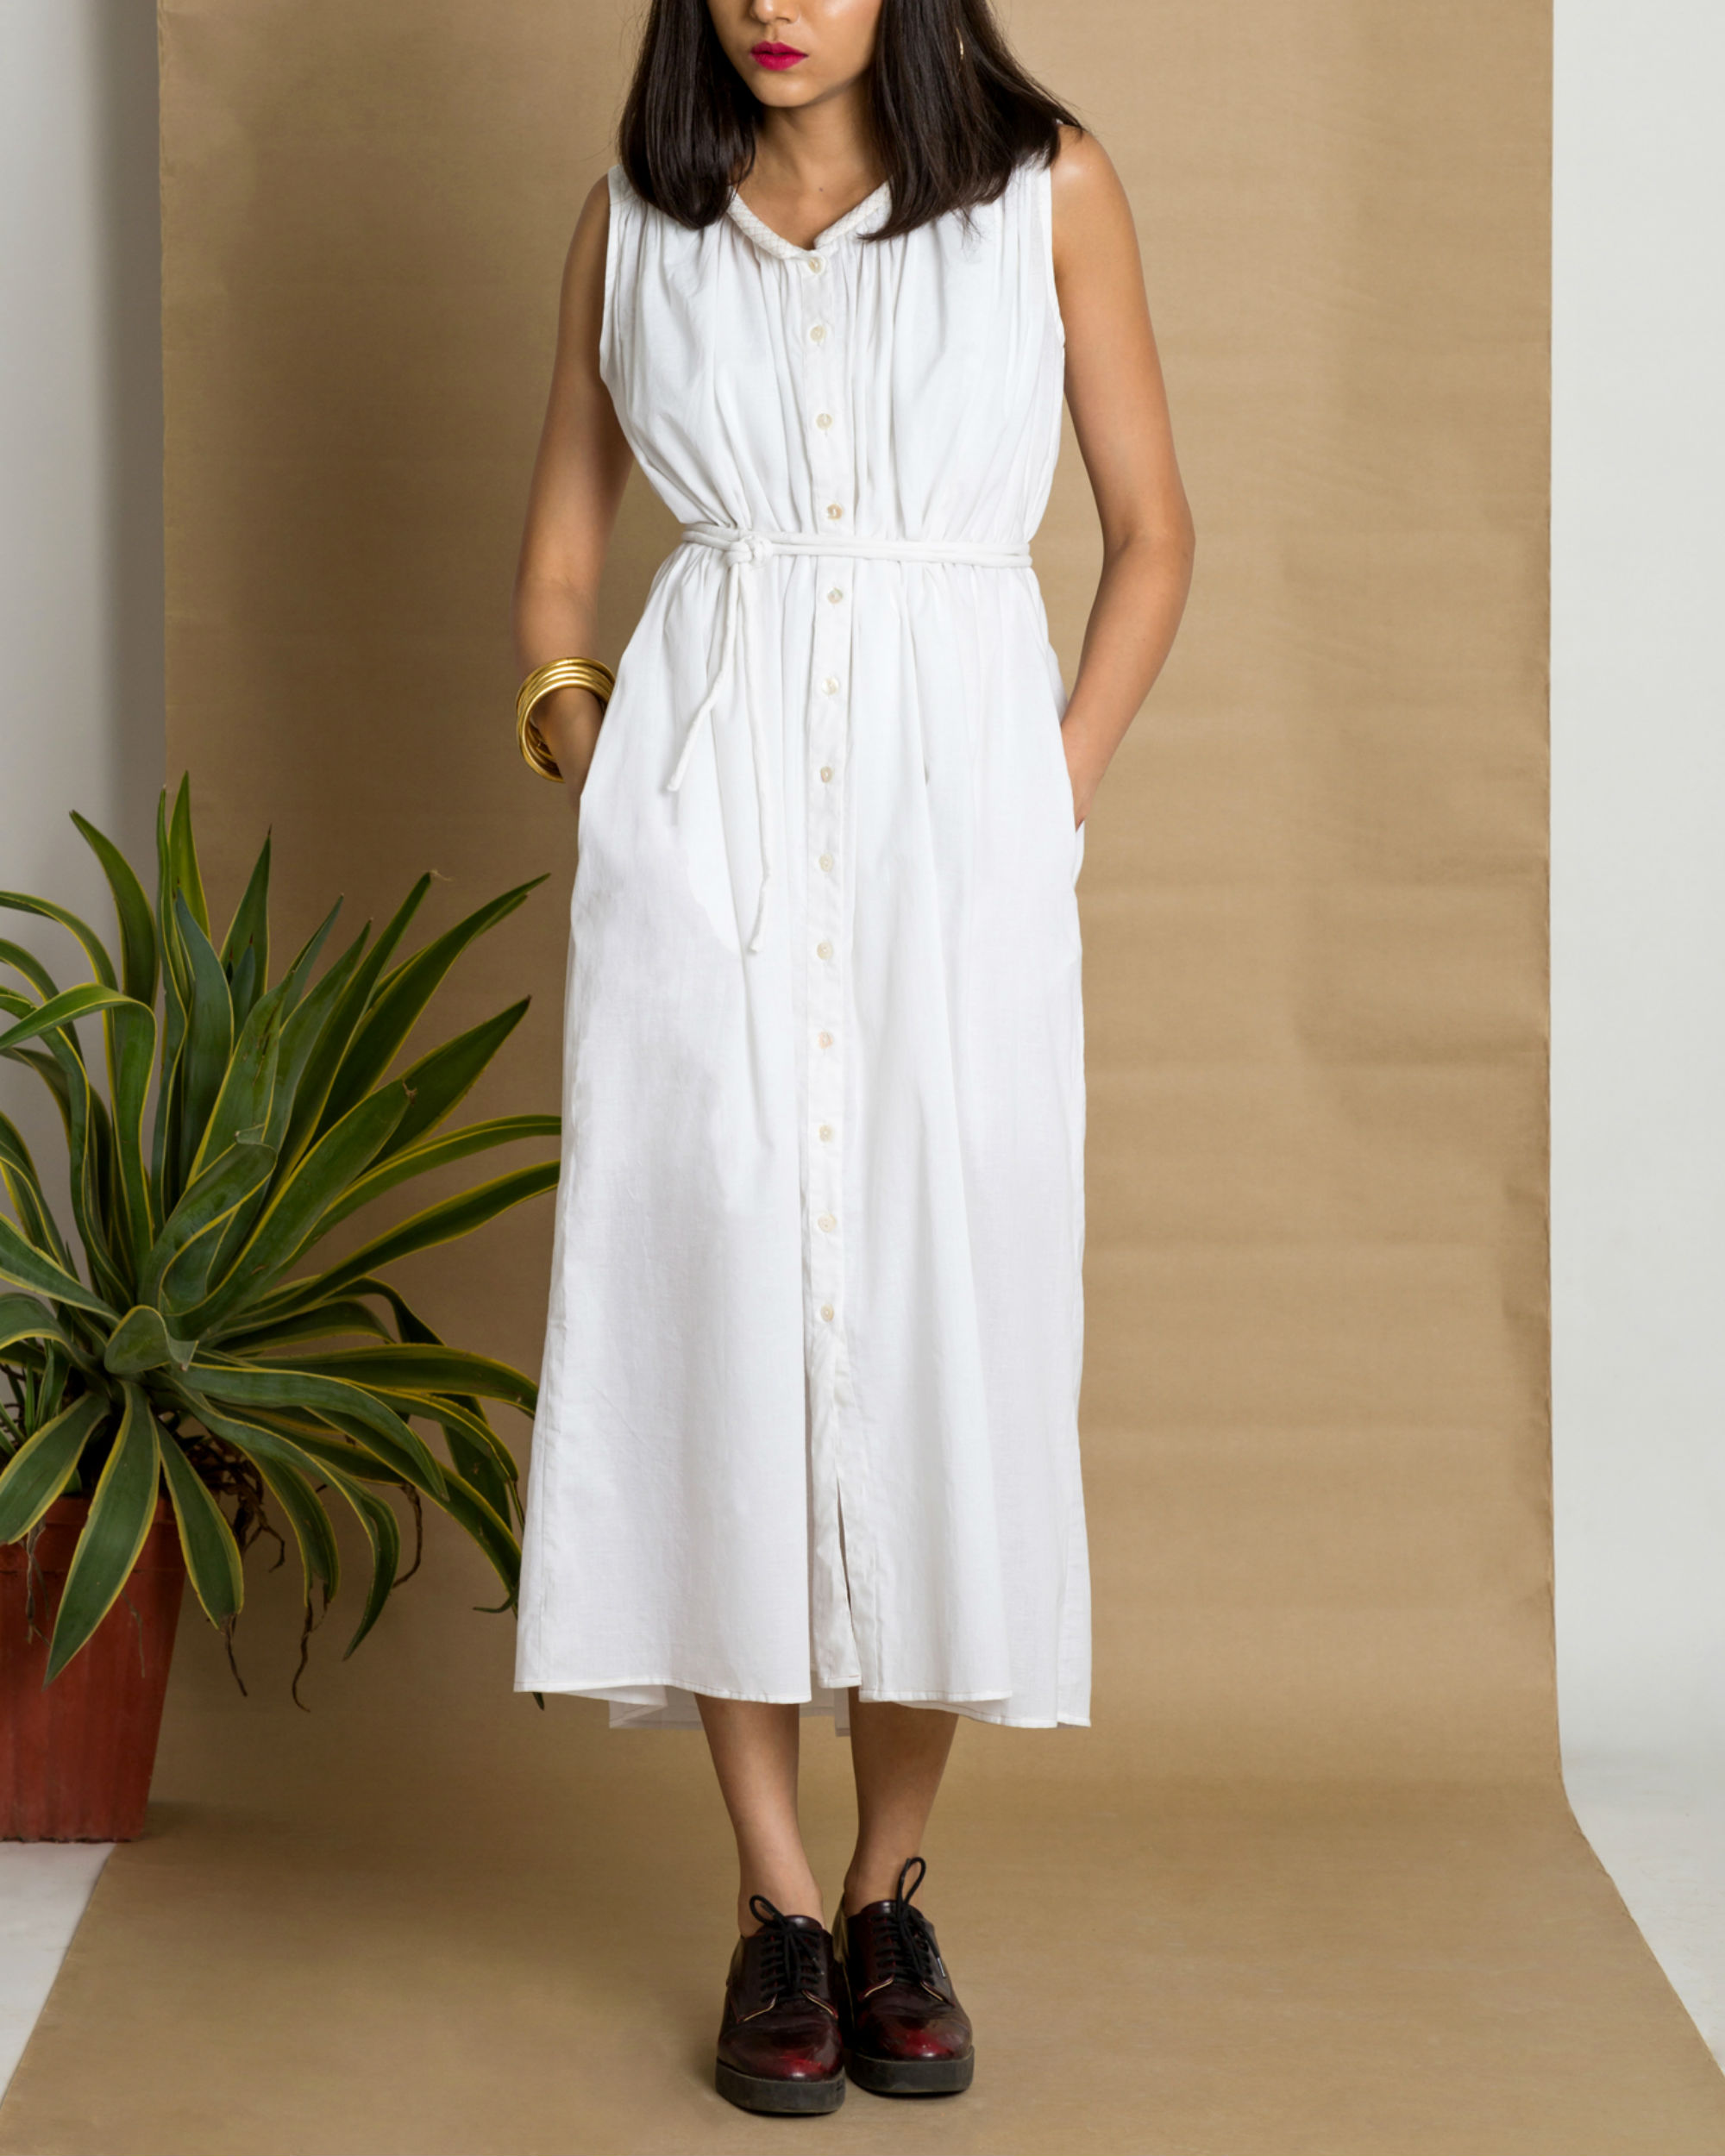 White sleeveless cotton dress